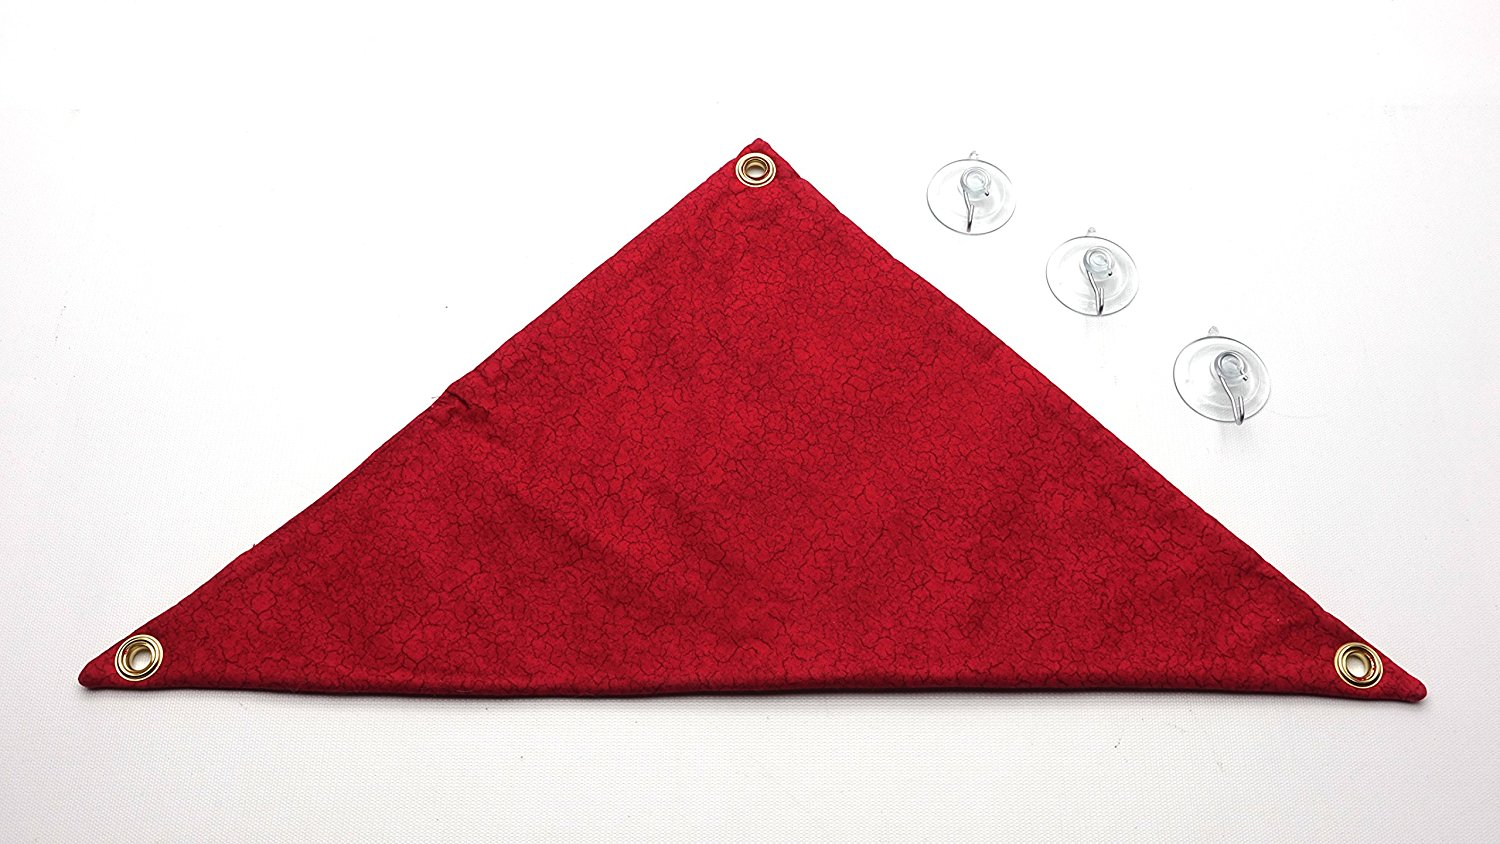 hammock for bearded dragons red crackle fabric with suction cup hooks